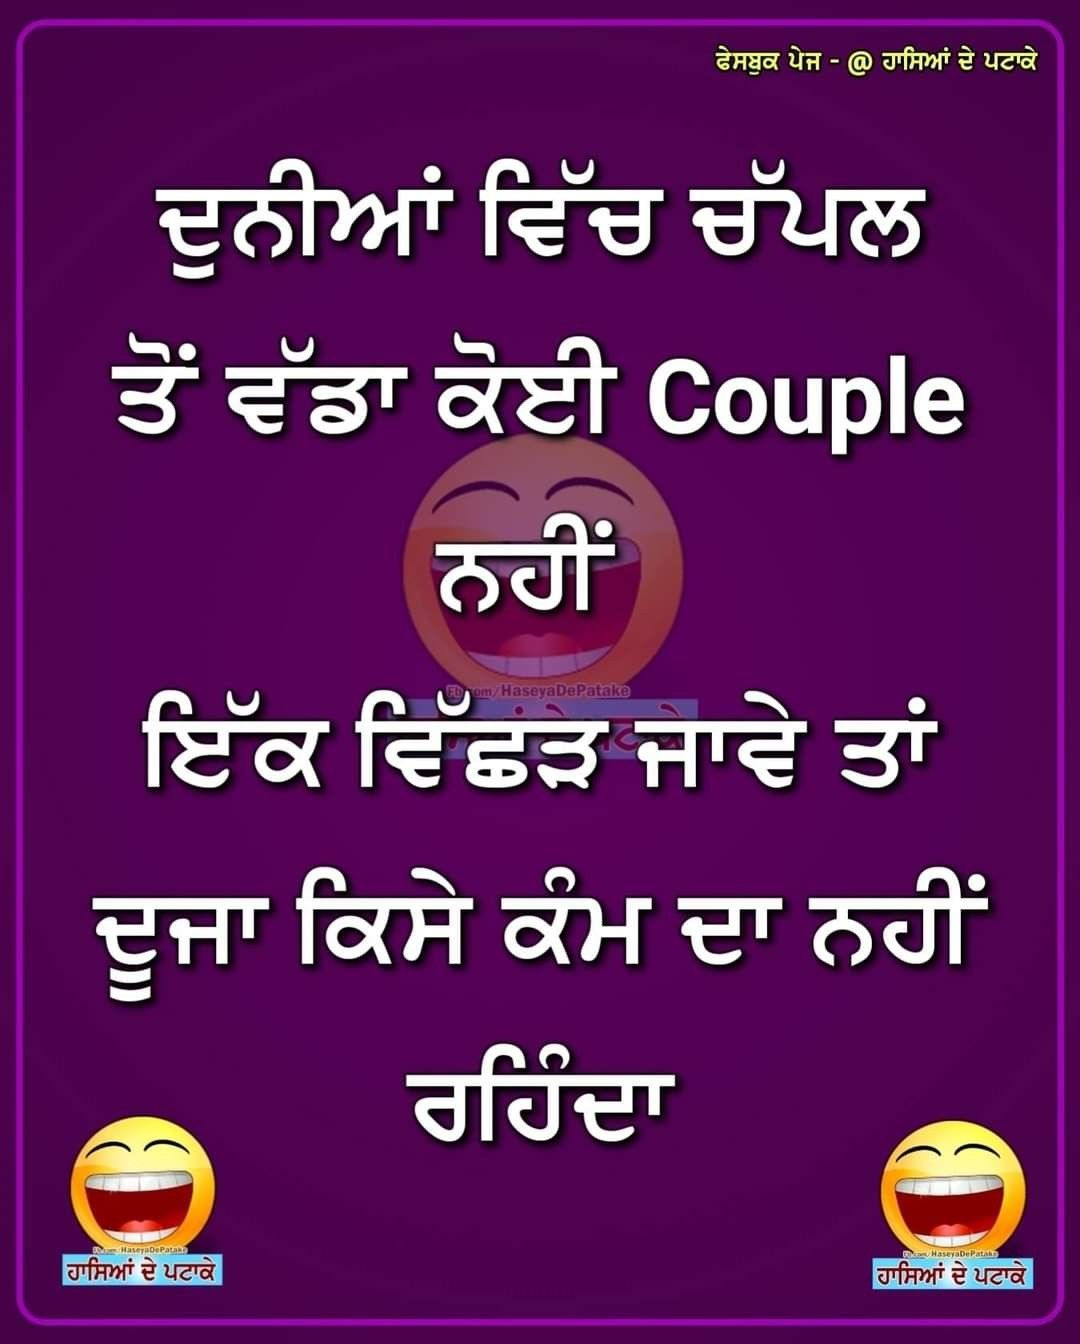 Chappal Guru Quotes Indian Quotes Punjabi Quotes